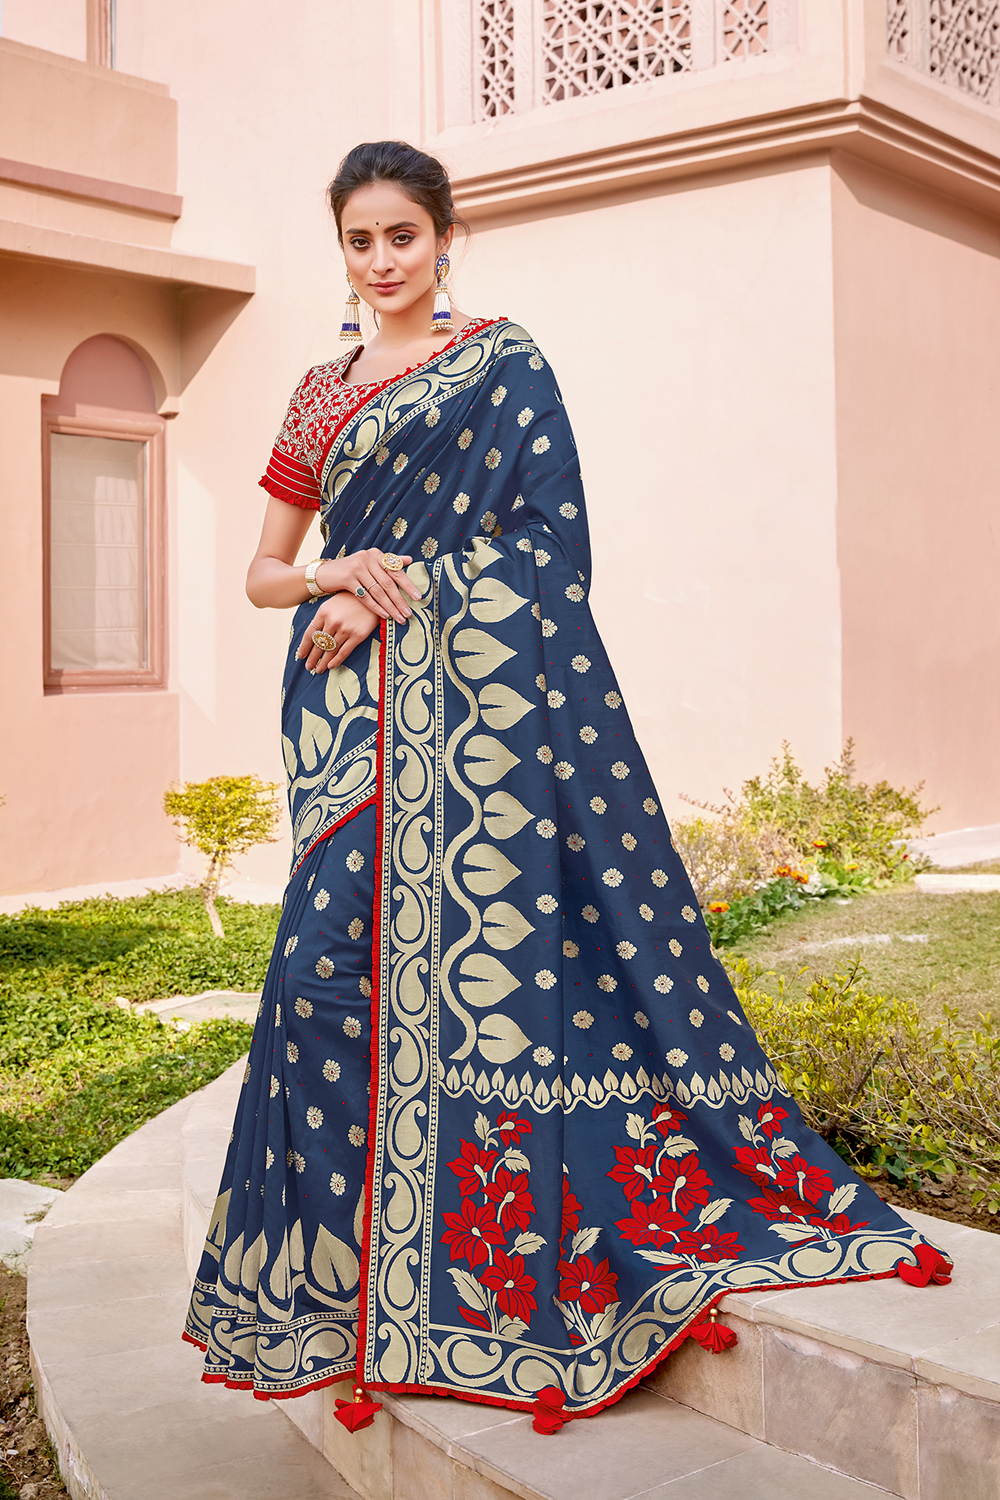 An artistic take on traditional silk saree royal blue and red